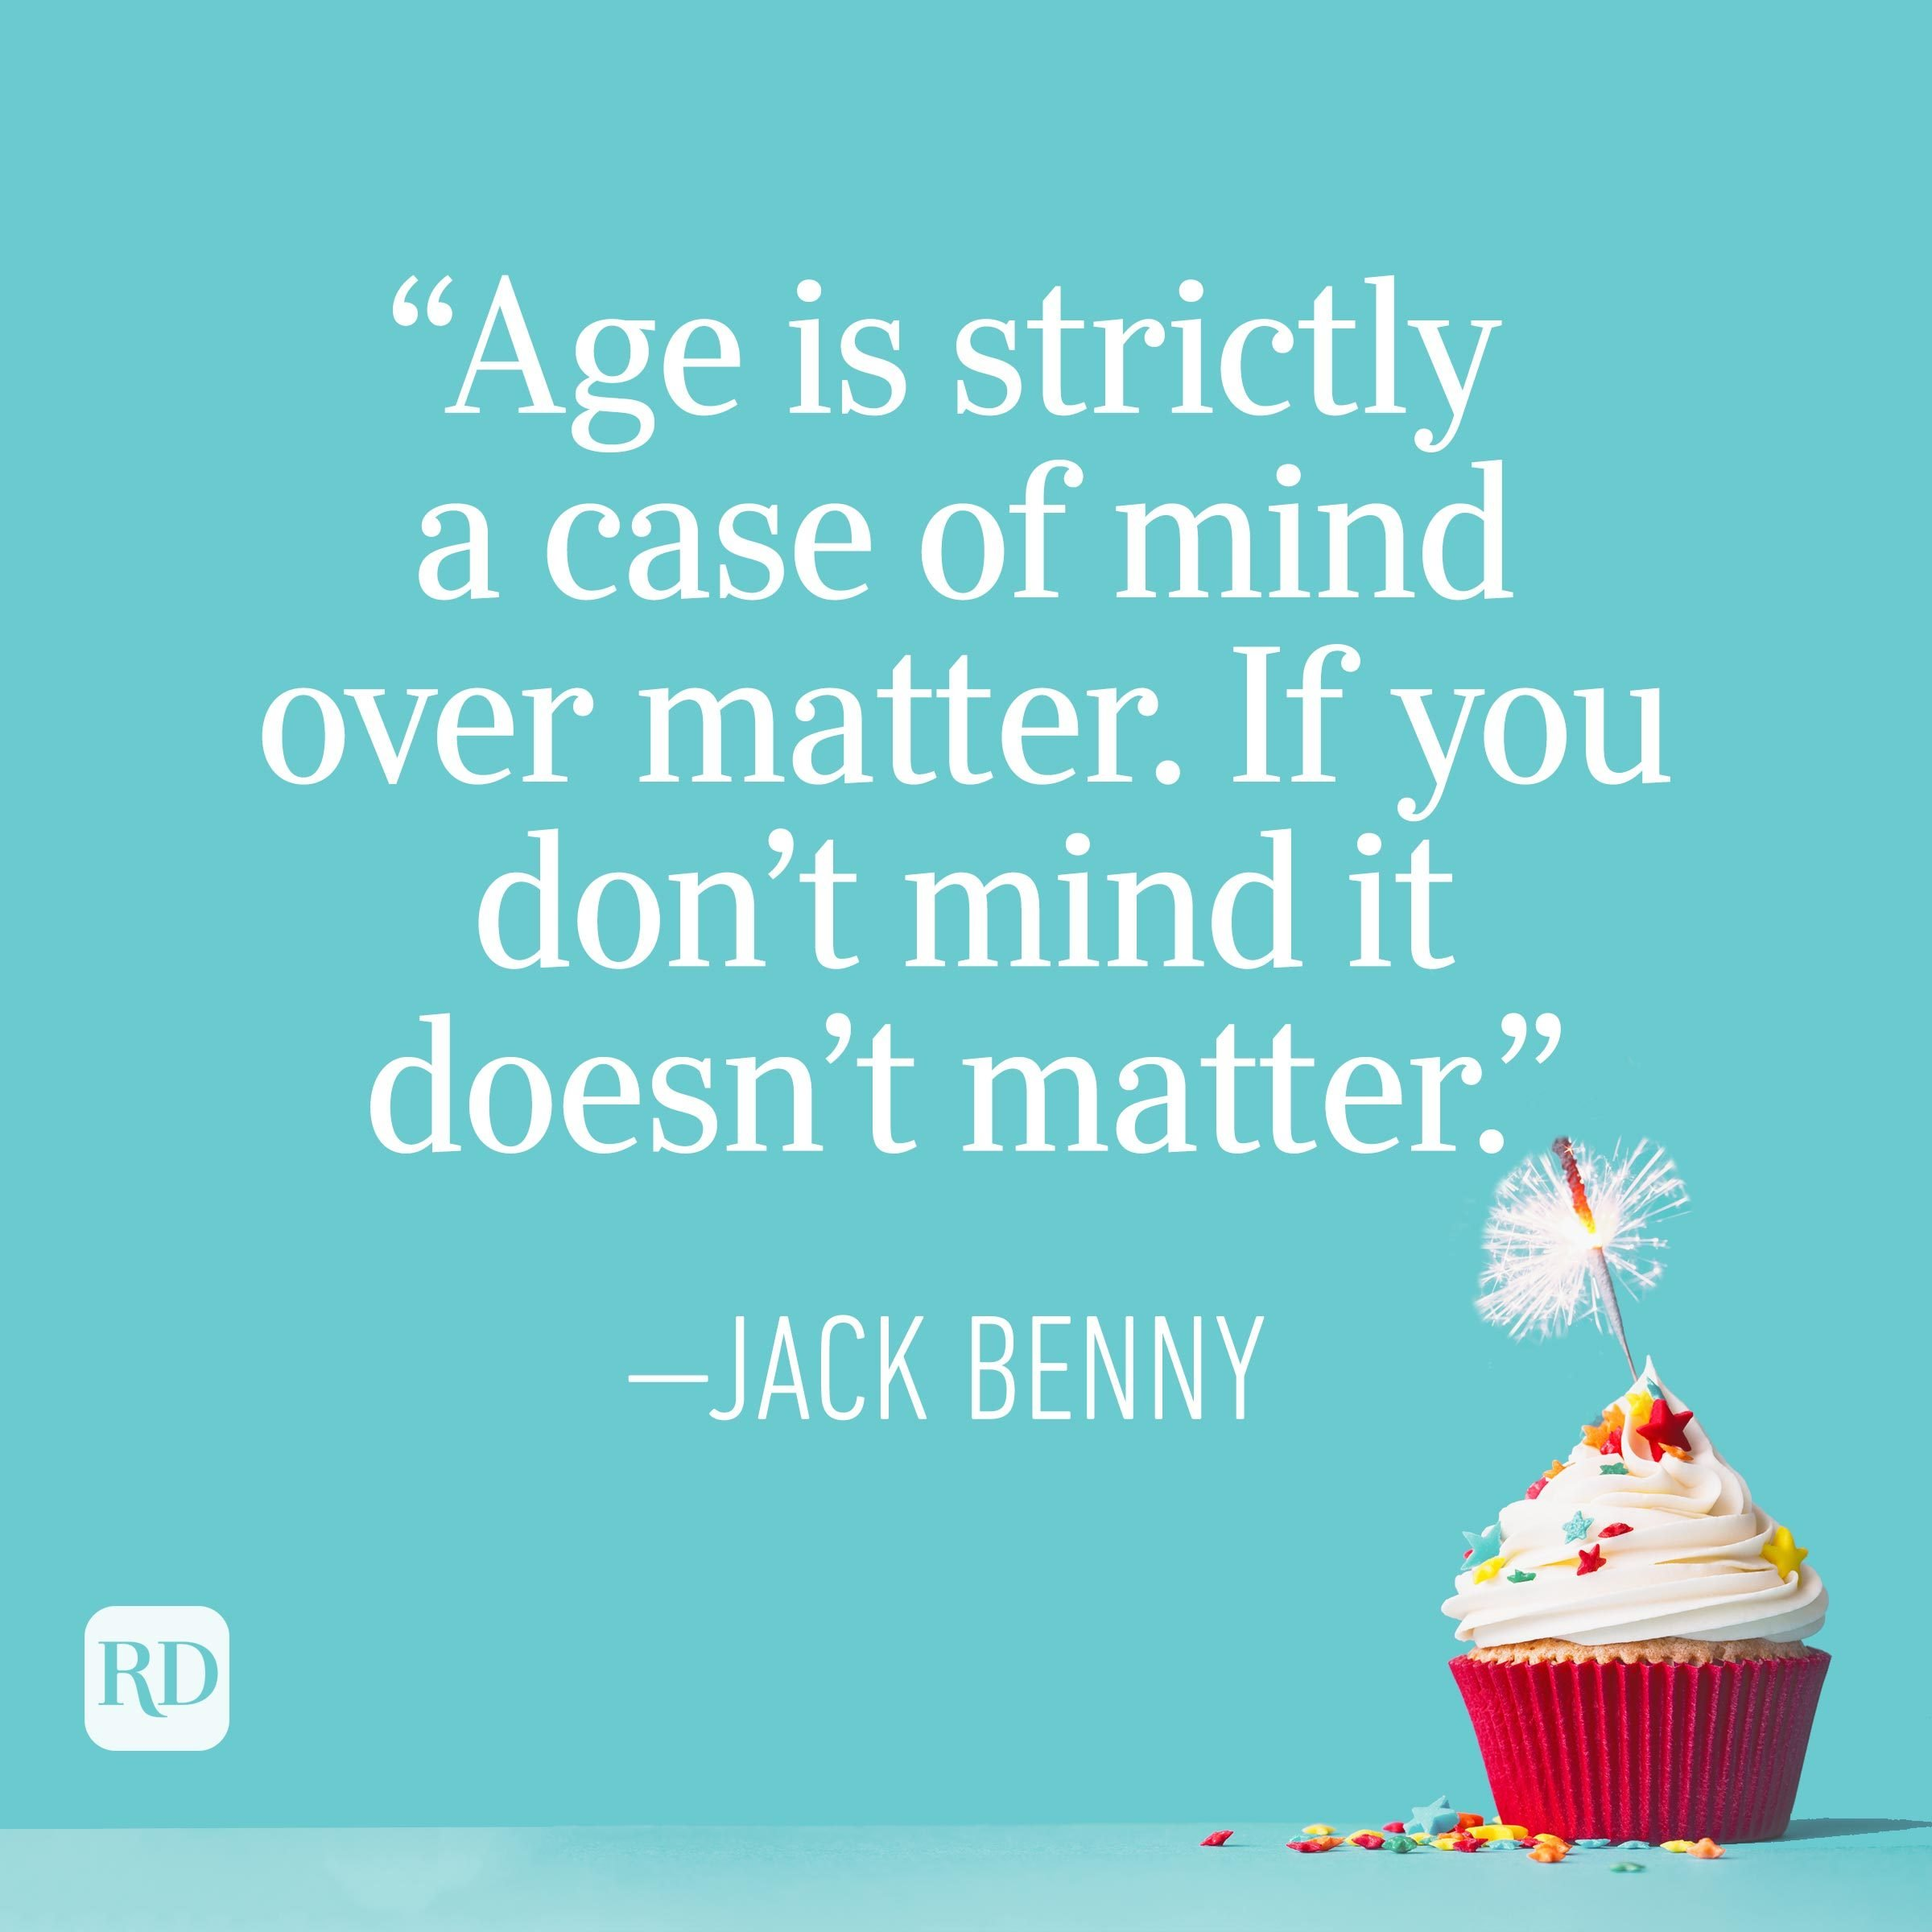 """""""Age is strictly a case of mind over matter. If you don't mind, it doesn't matter."""" —Jack Benny"""